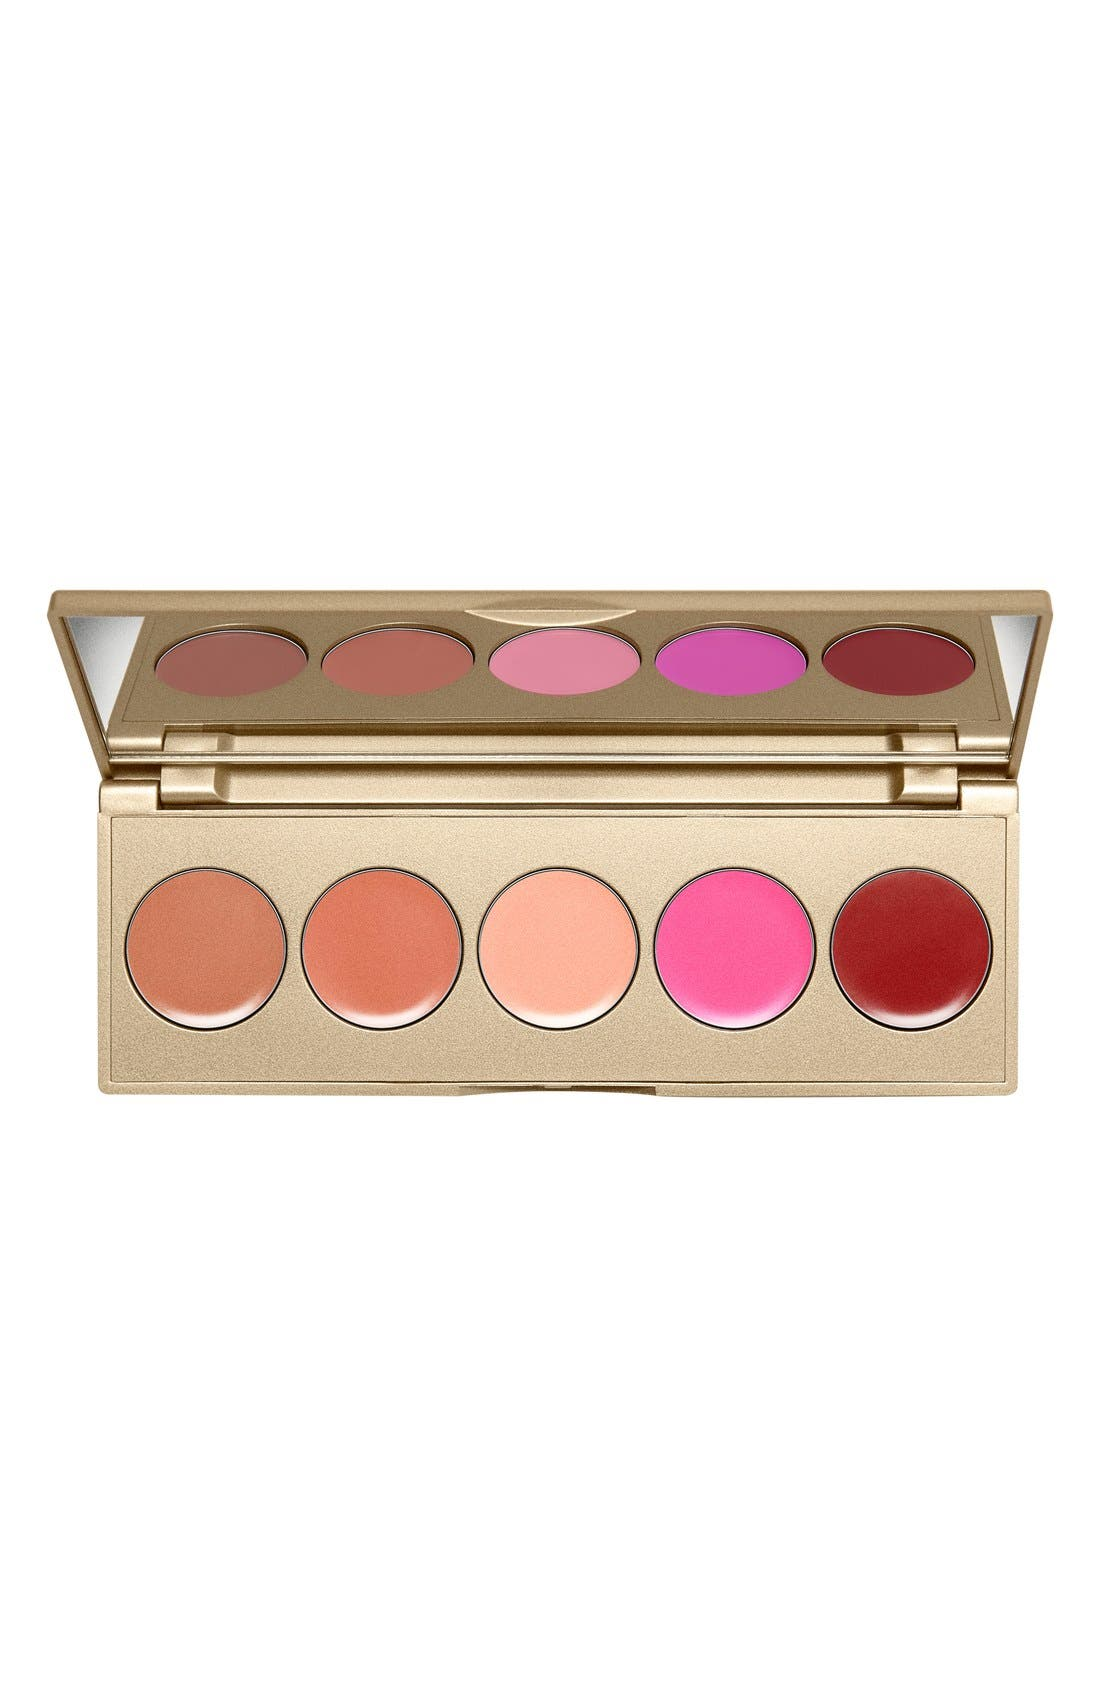 Stila Convertible Color Dual Lip & Cheek Palette